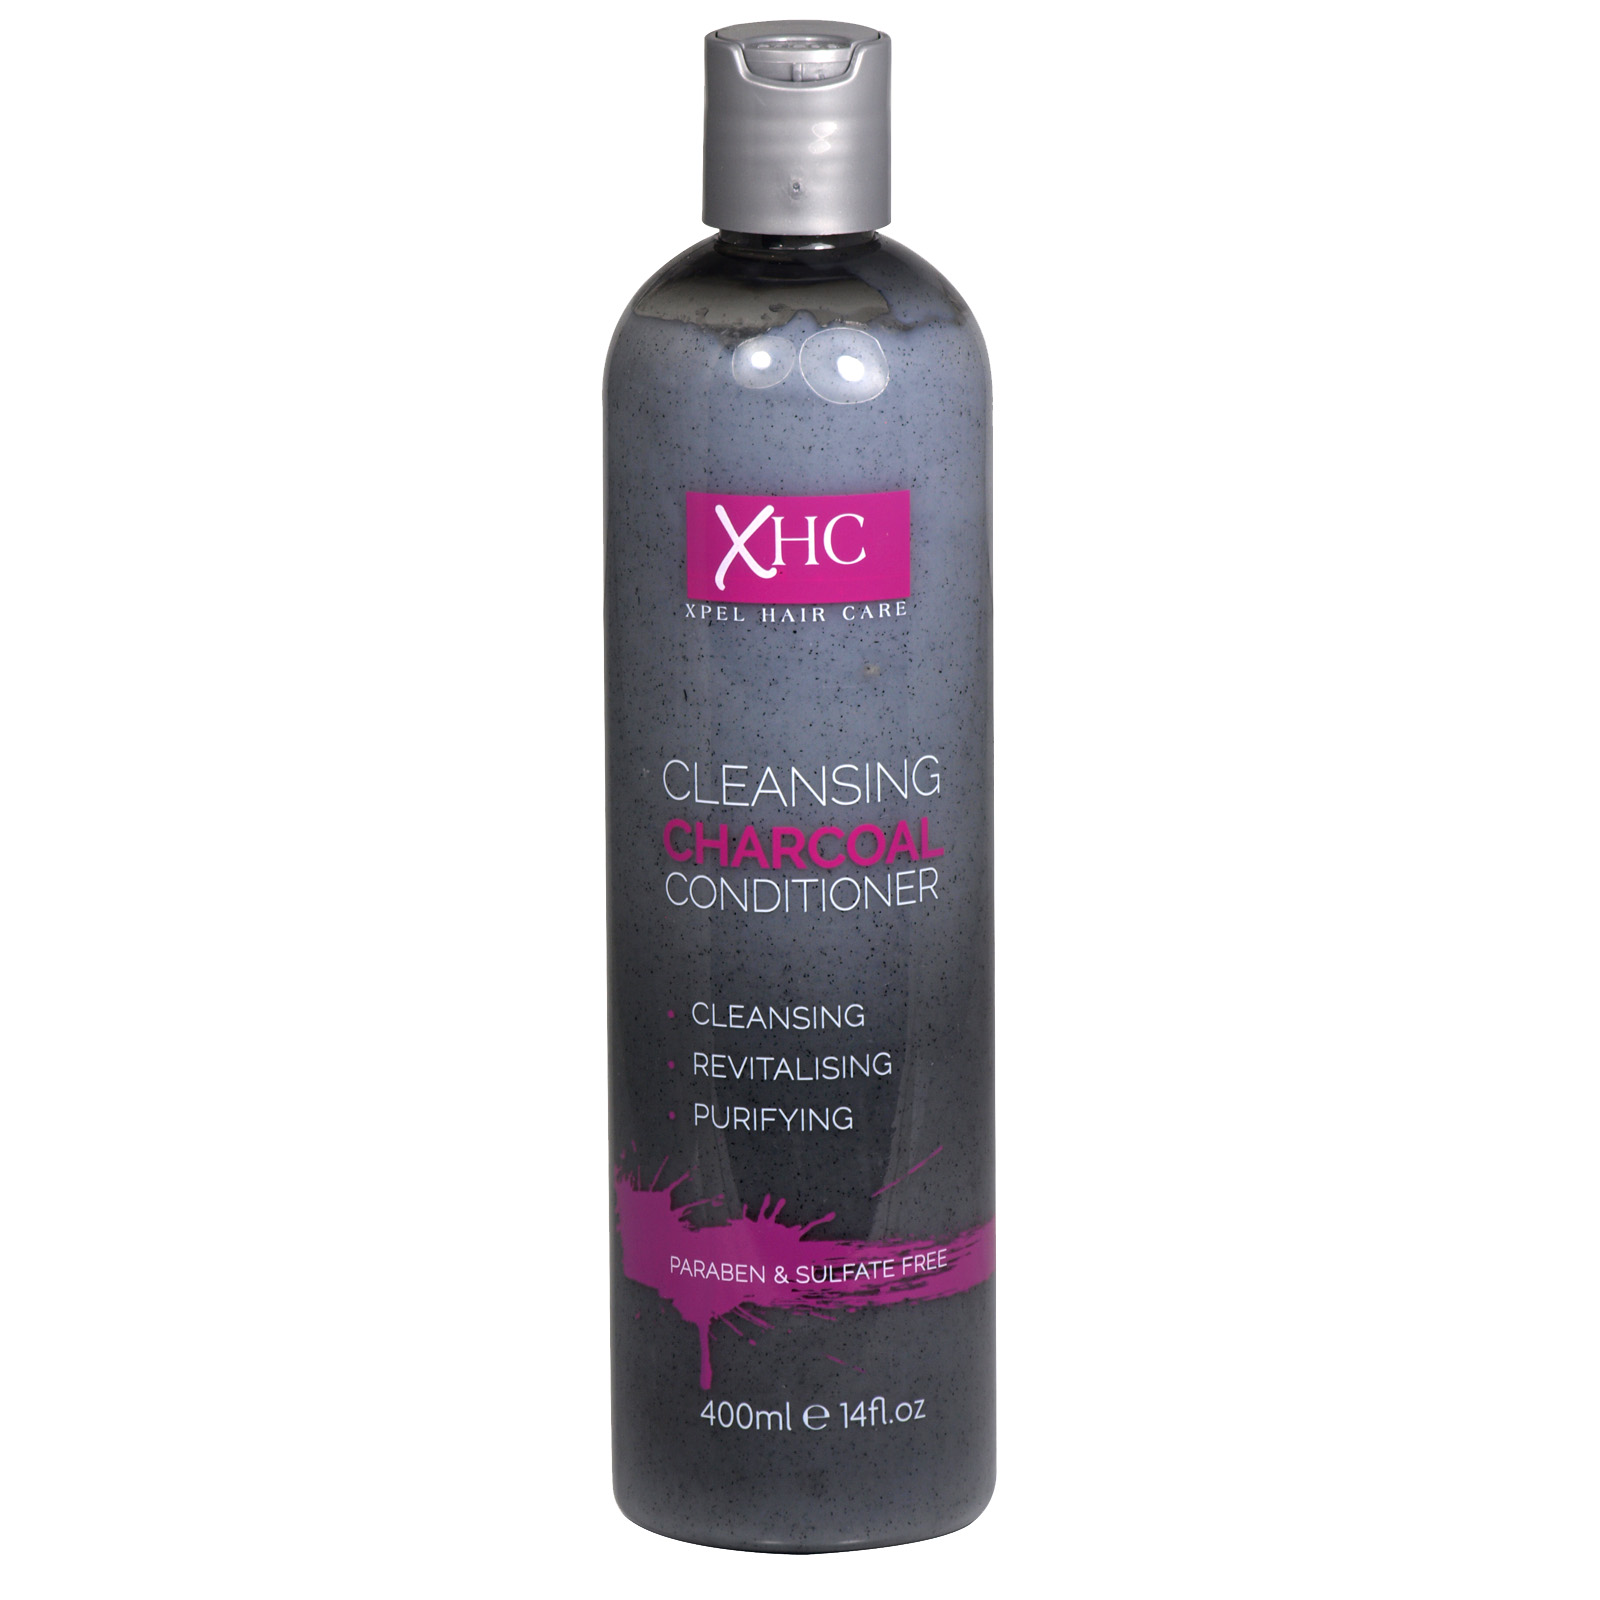 XHC CLEANSING CHARCOAL CONDITIONER 400ML X12